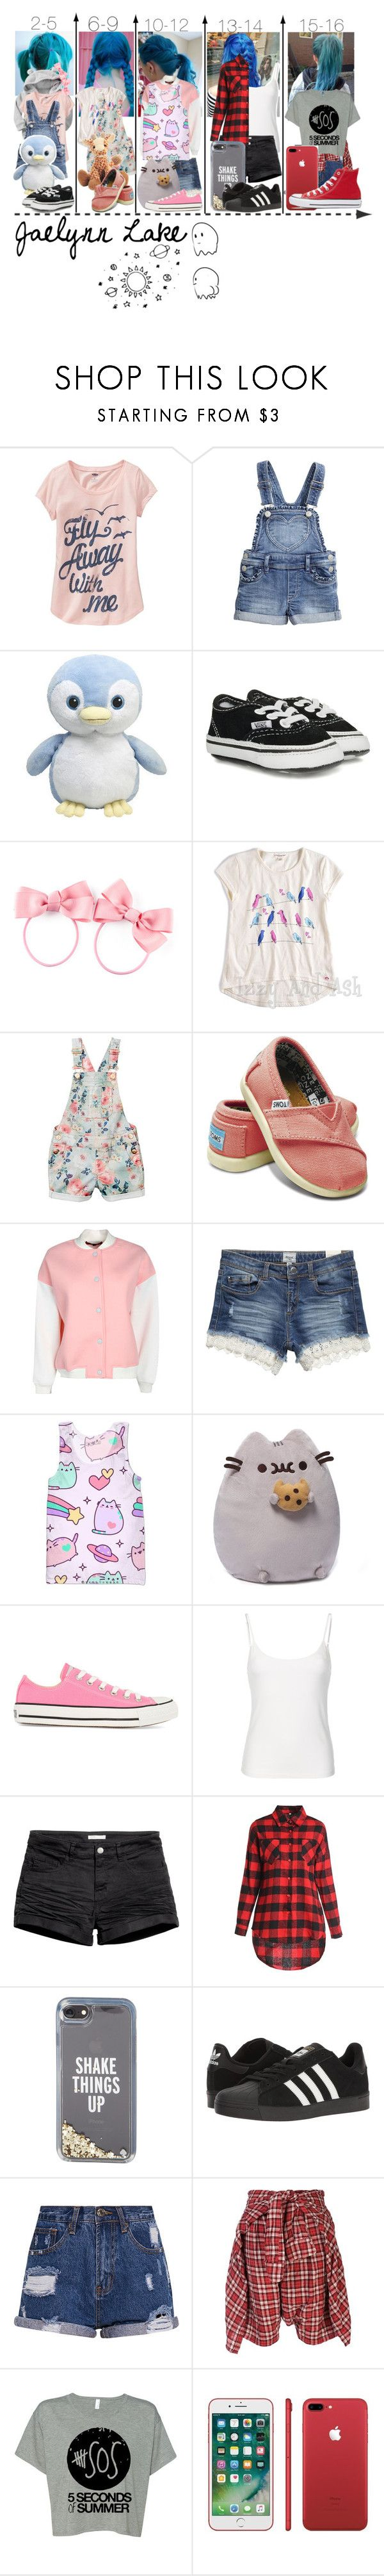 """""""Blue haired miracle"""" by frootloop16 ❤ liked on Polyvore featuring Gap, Old Navy, Vans, H&M, Appaman, TOMS, Tarah, Pusheen, Converse and Kate Spade"""